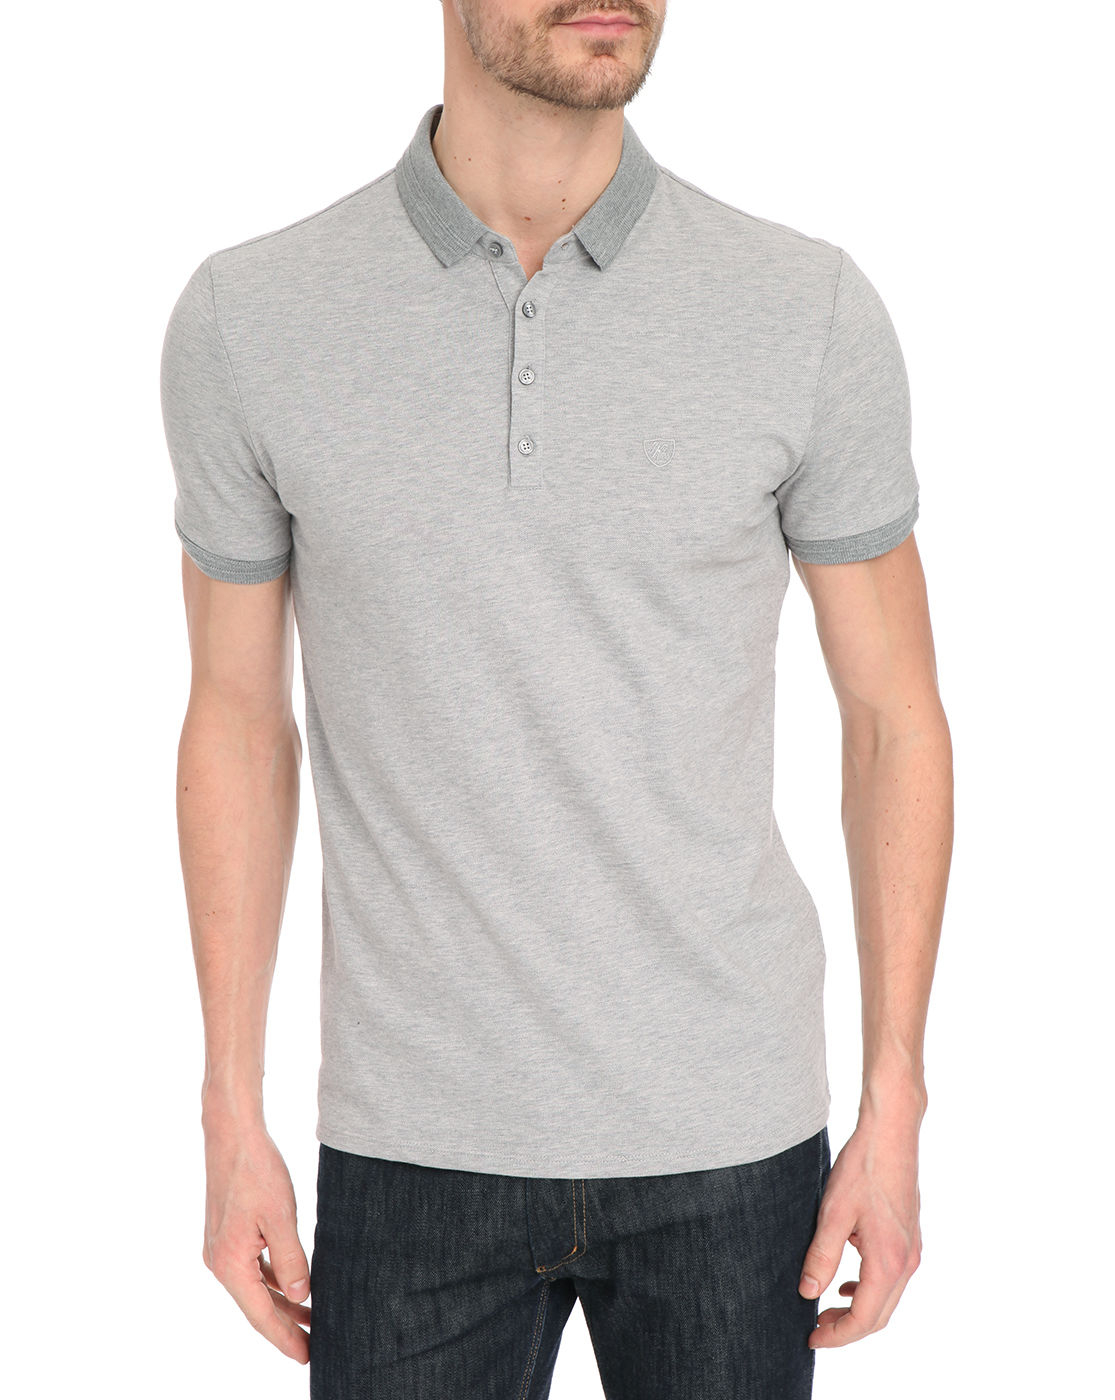 ikks mottled grey basic polo shirt in gray for men grey lyst. Black Bedroom Furniture Sets. Home Design Ideas